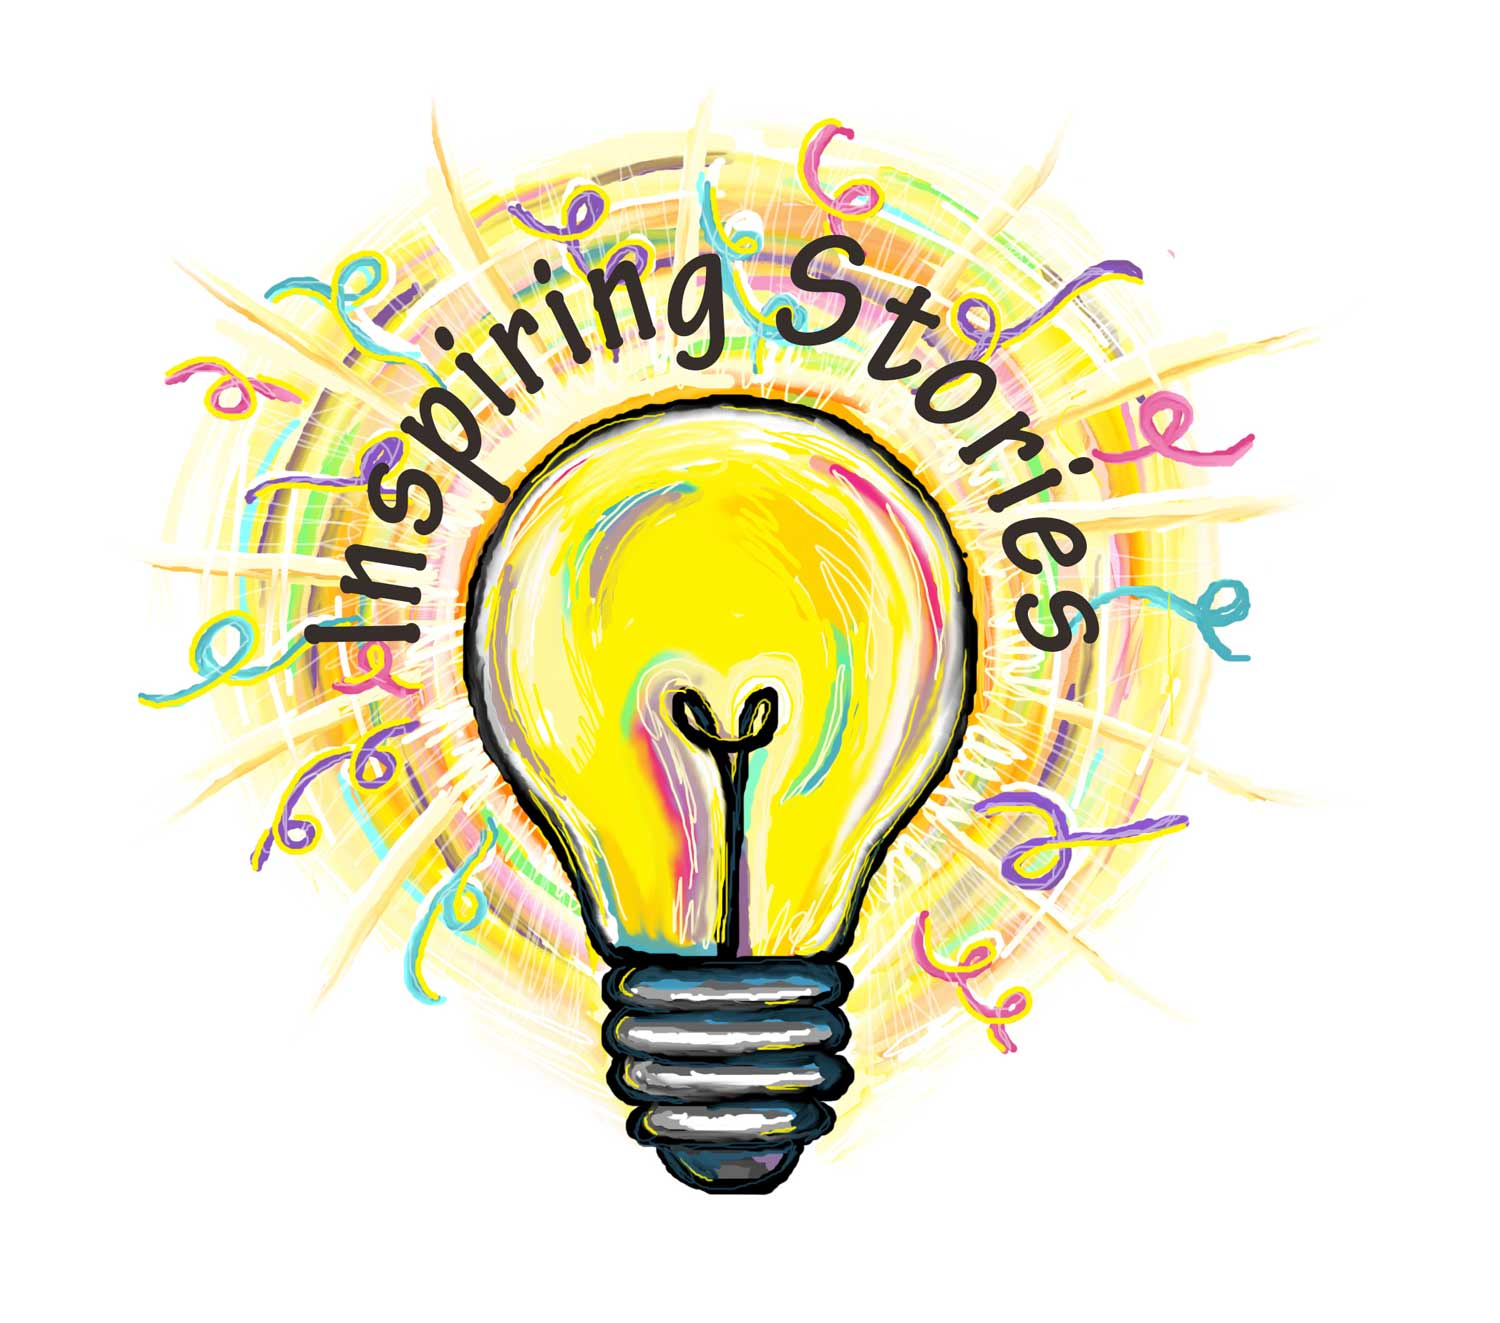 inspiring-stories-podcast-logo.jpg